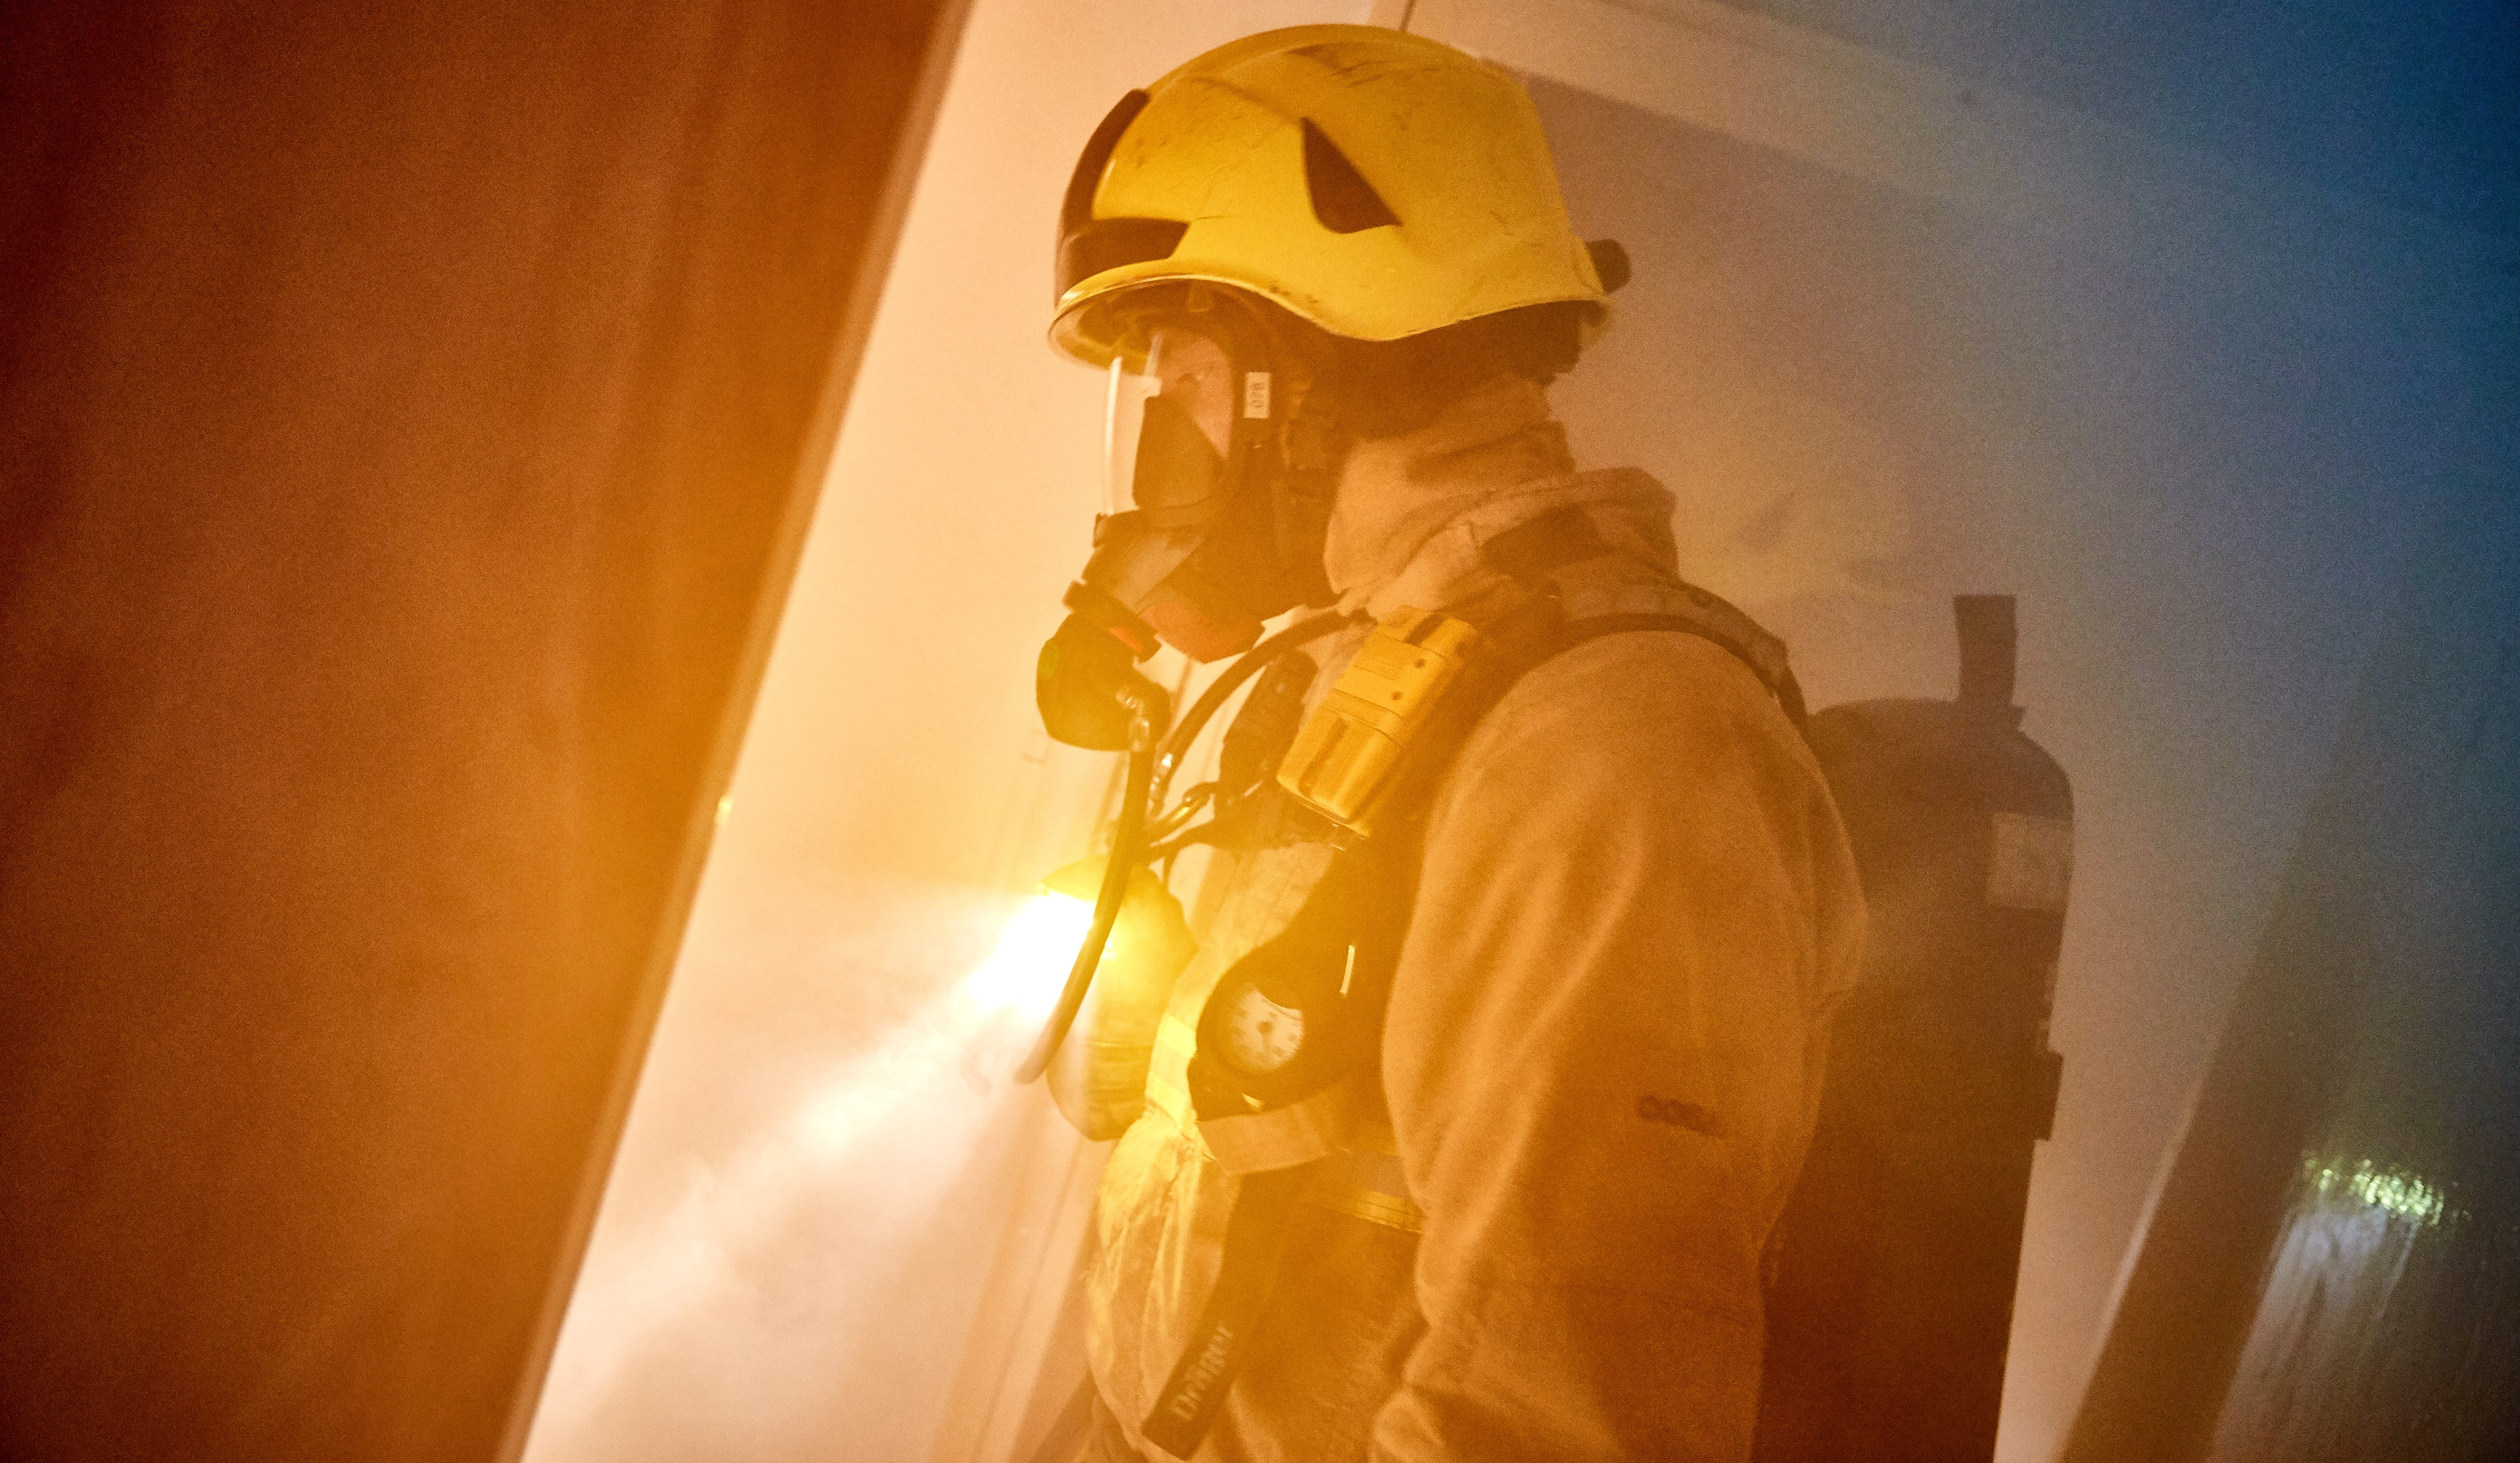 Luton Fire Station – BedfordshireFRS – Action shots (19)